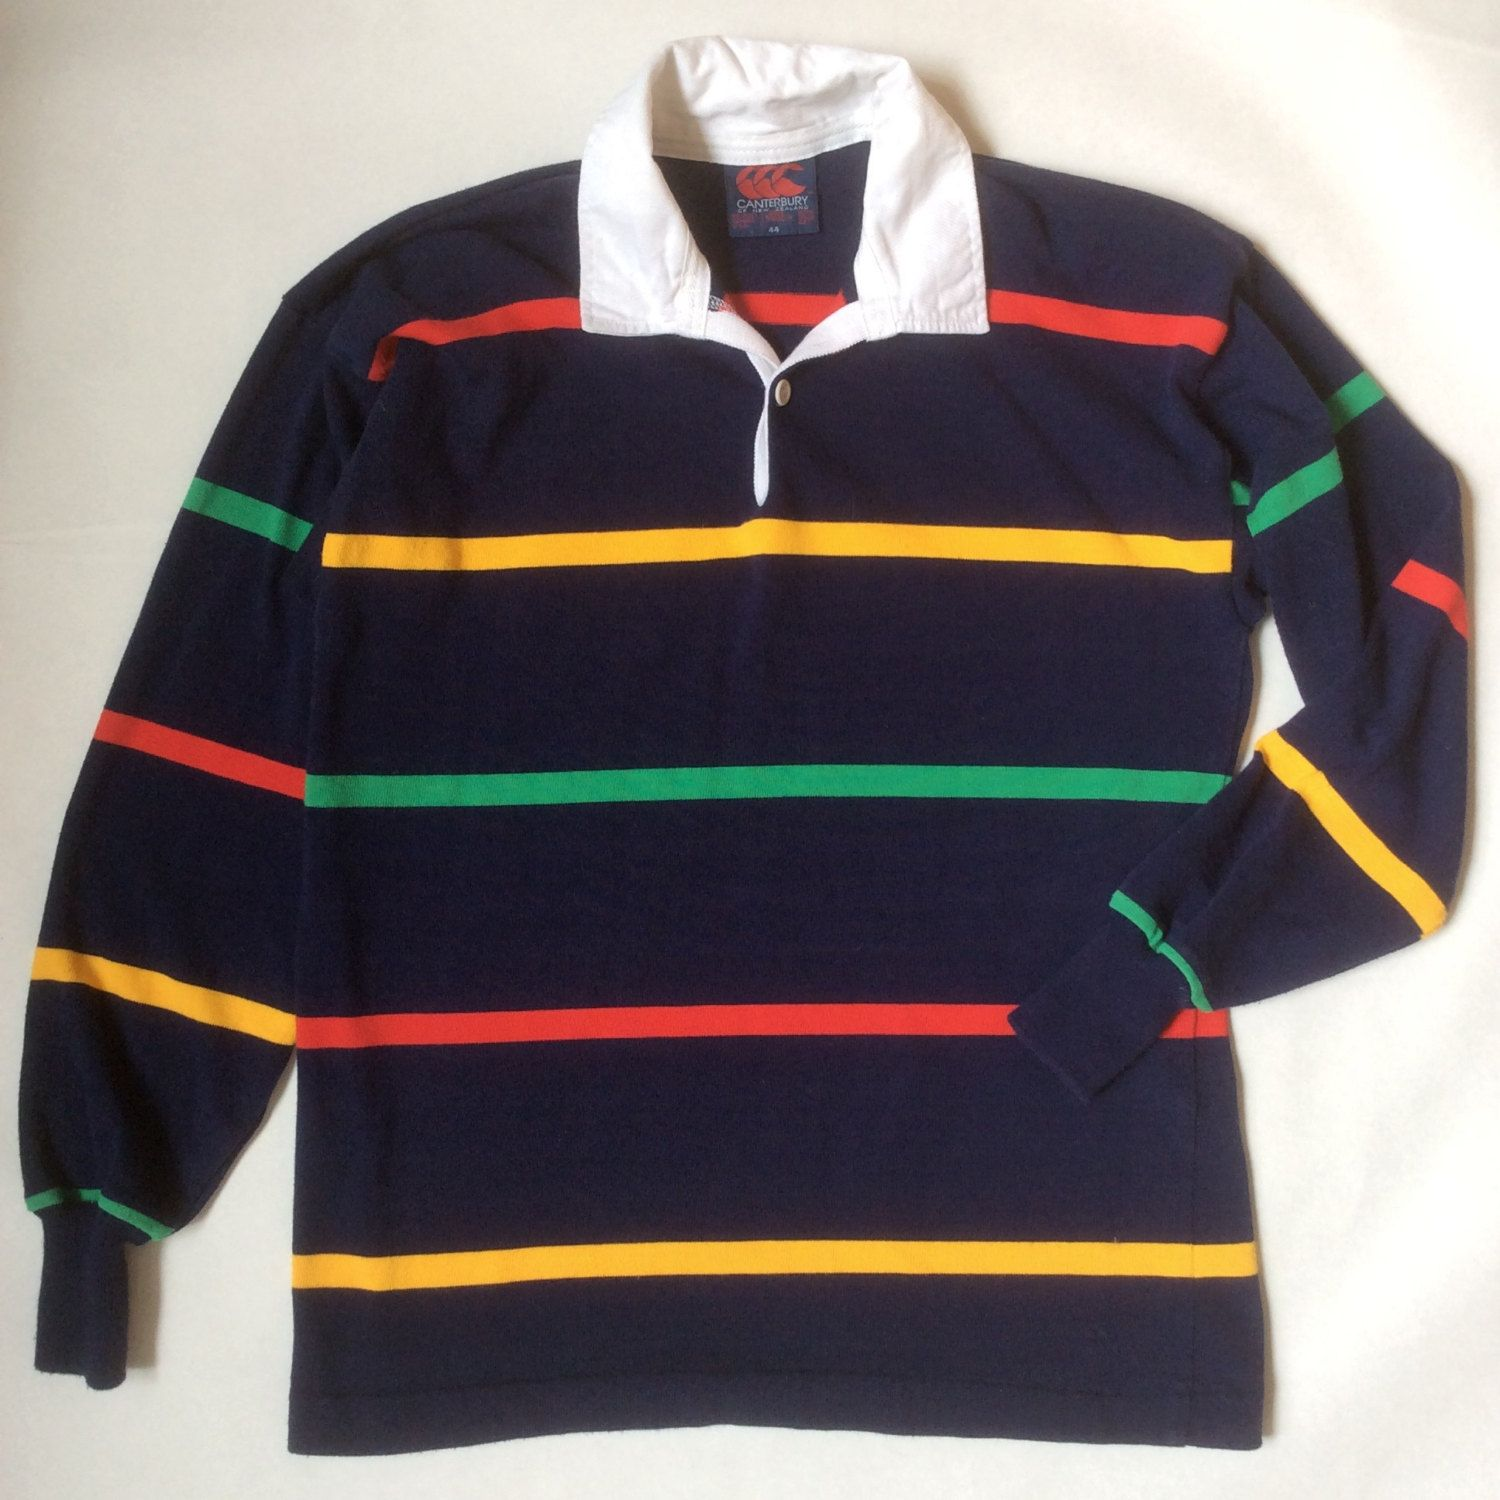 Men 39 S Rugby Shirt Navy Blue Striped In Primary Colors With White Collar Long Sleeve Men 39 S Medium Large 44 Mens Rugby Shirts Rugby Shirt Shirts